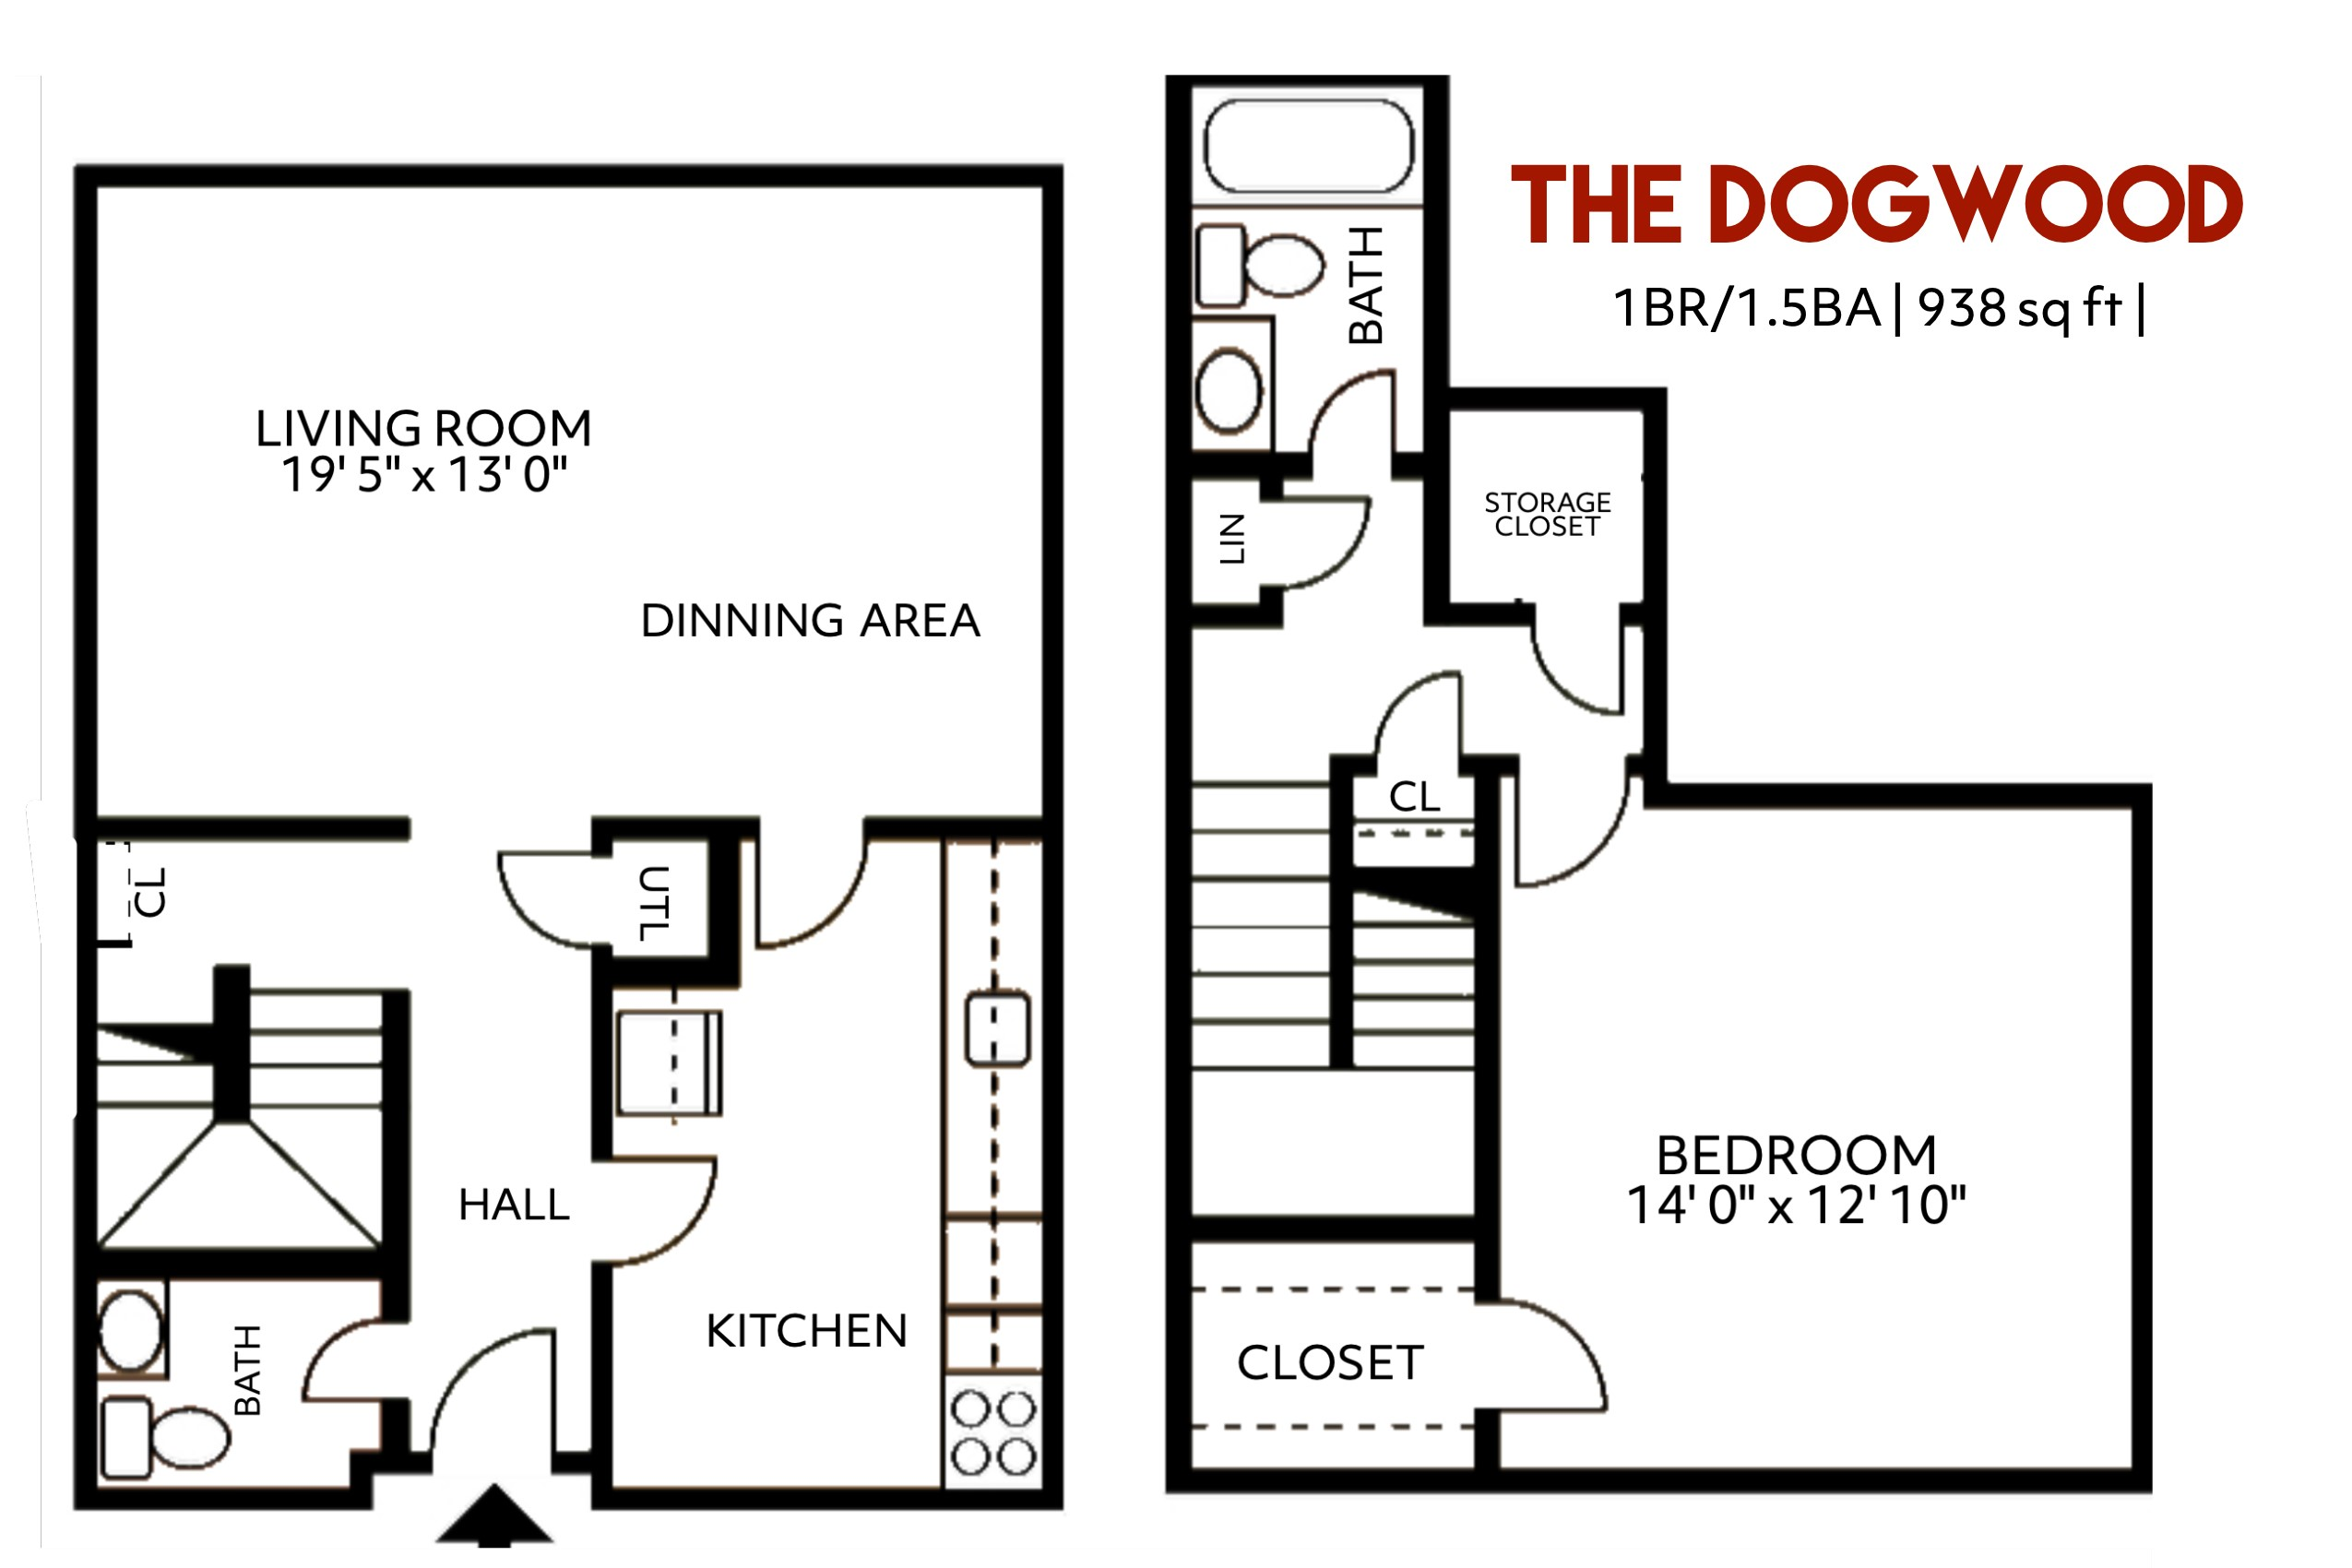 The Dogwood Floorplan